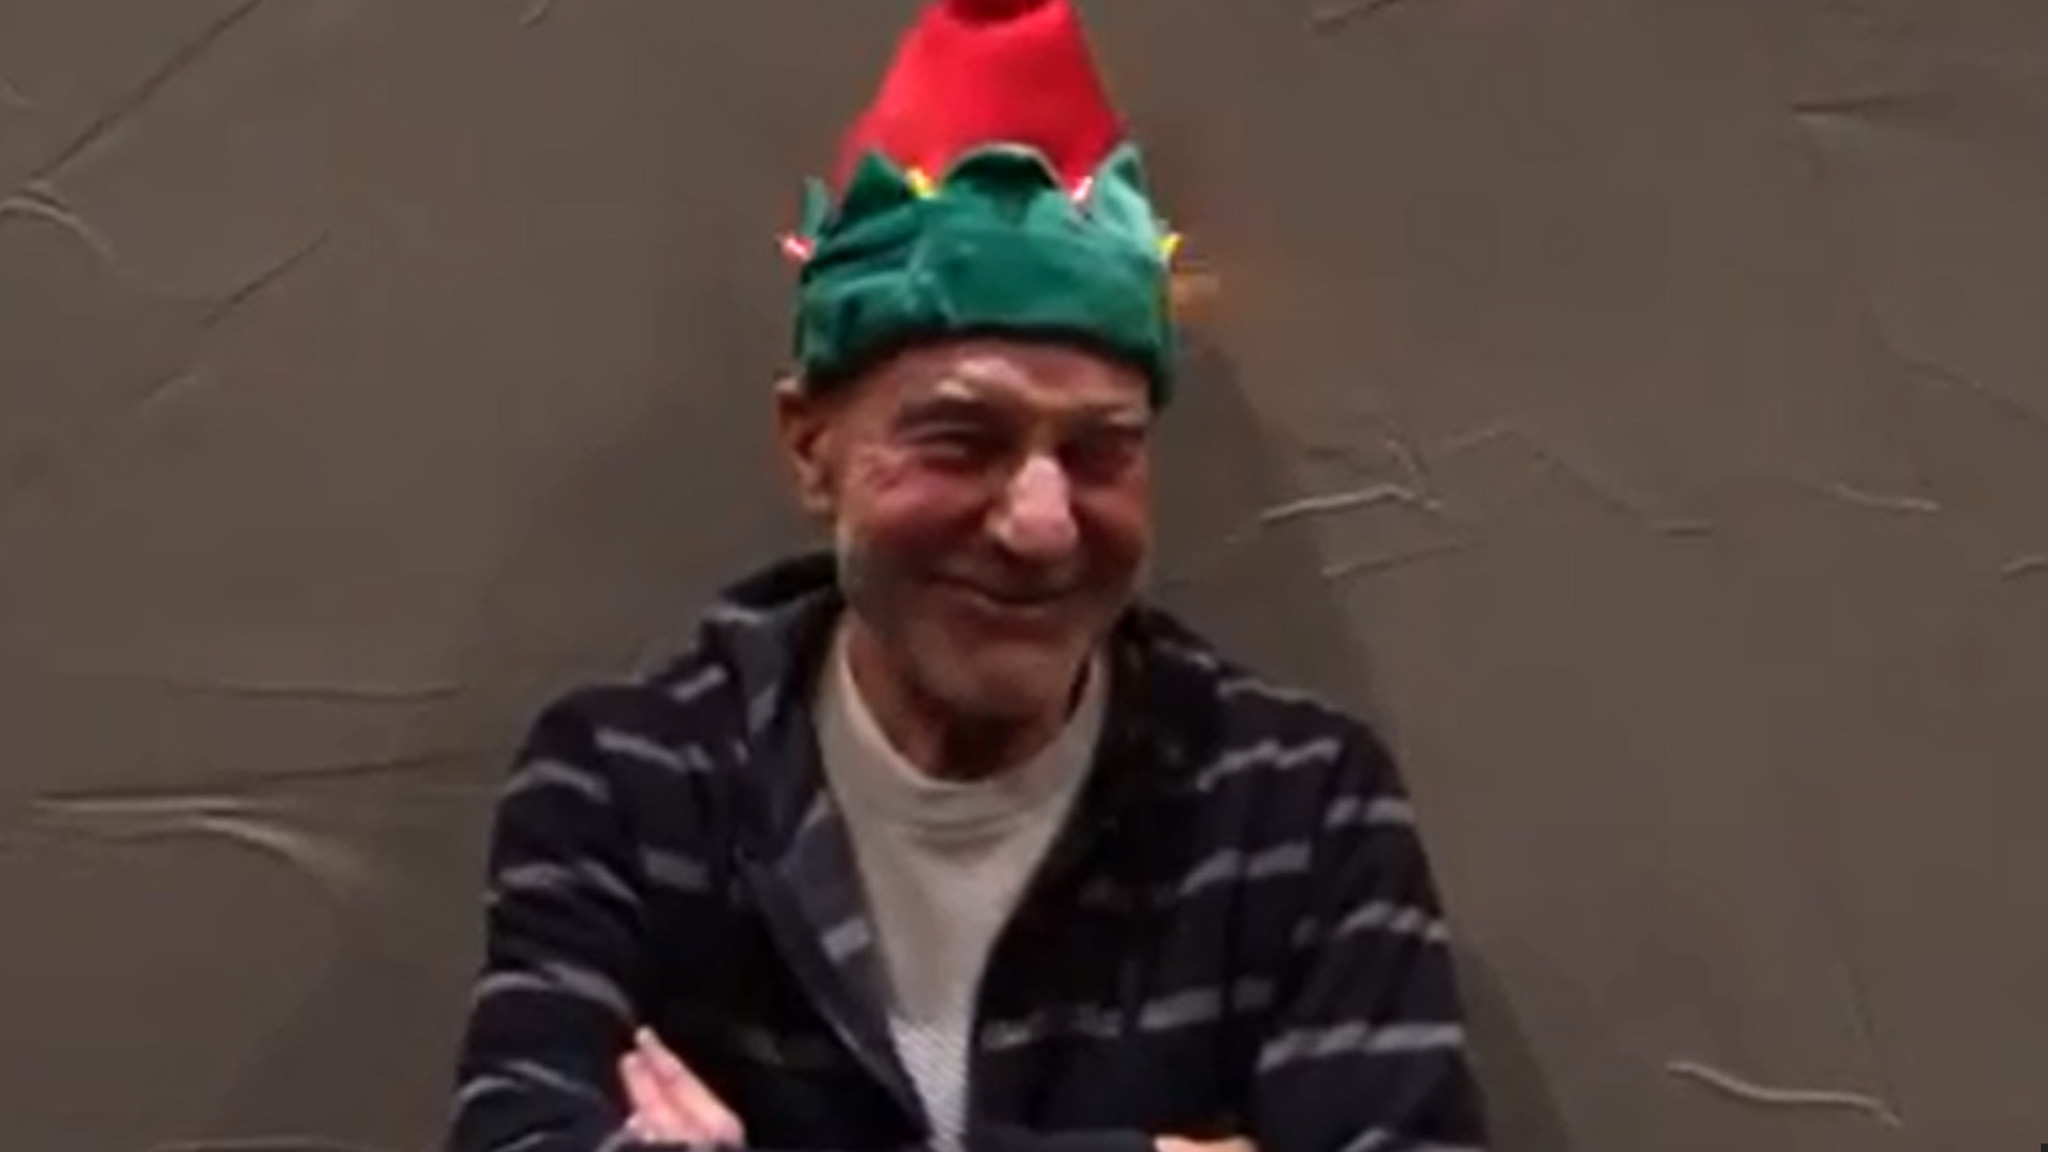 Patrick Stewart and his delightful Christmas hat - Chicago ...